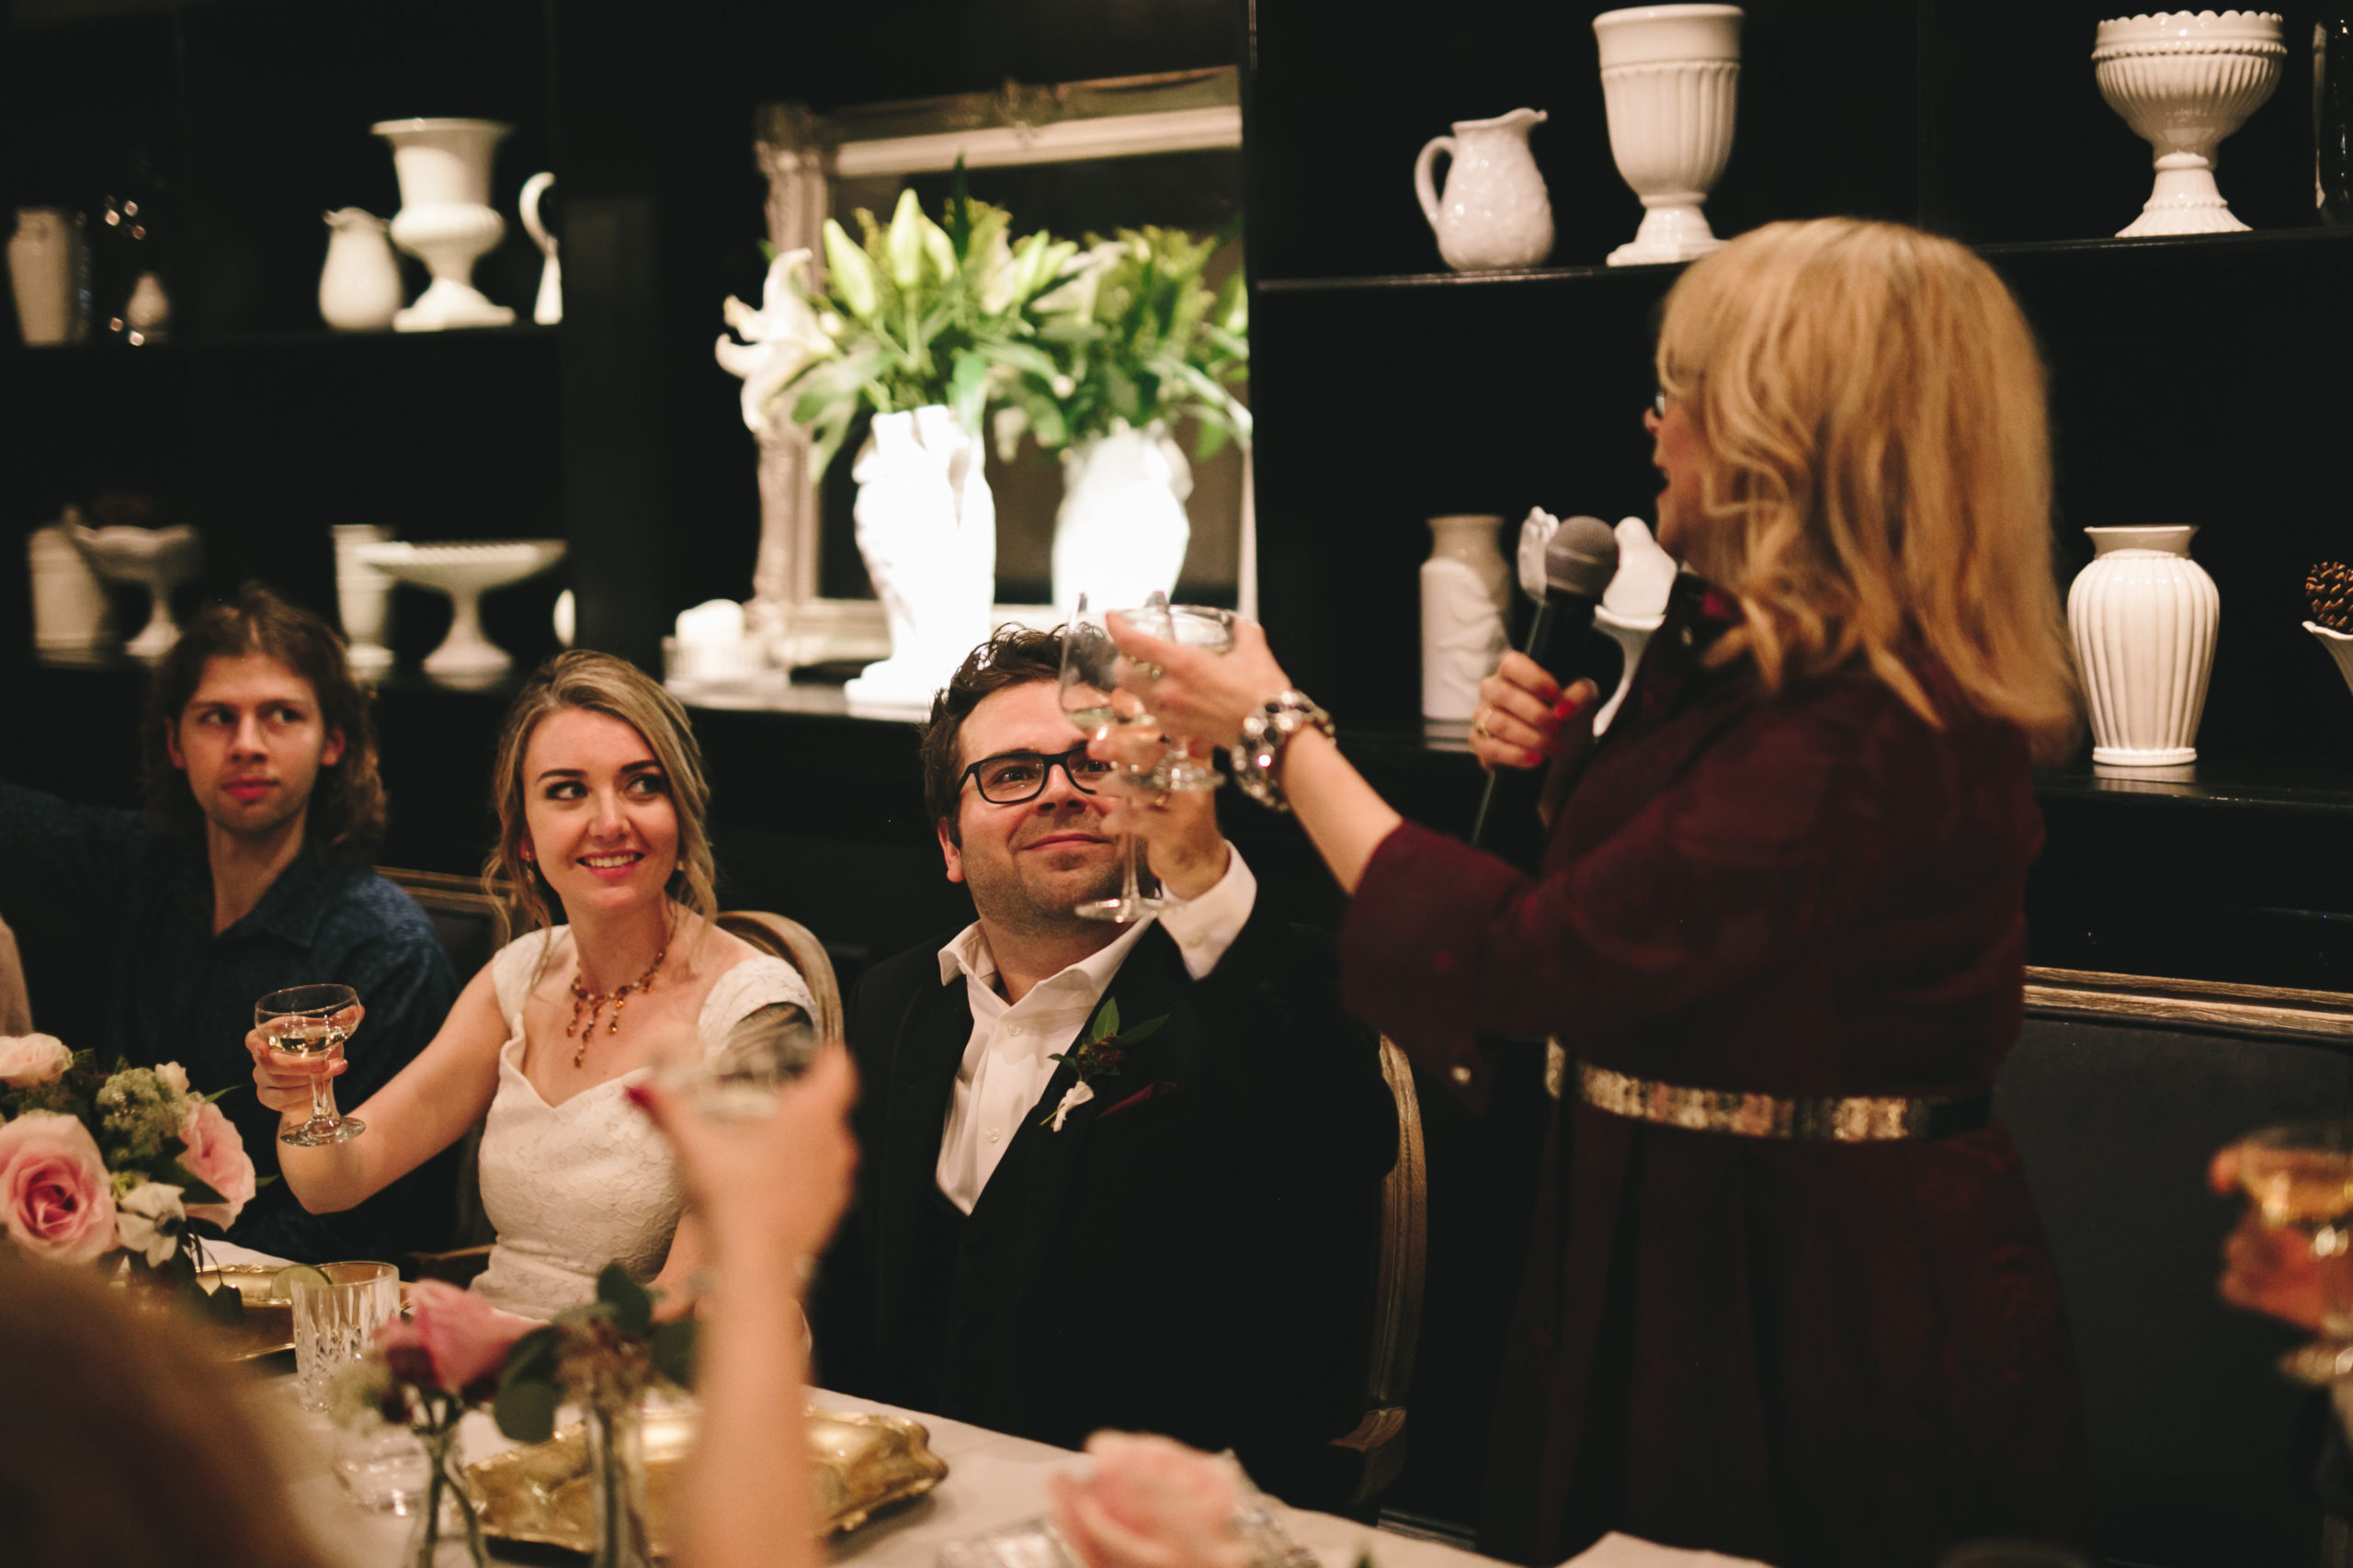 Mother of groom toast at wedding reception